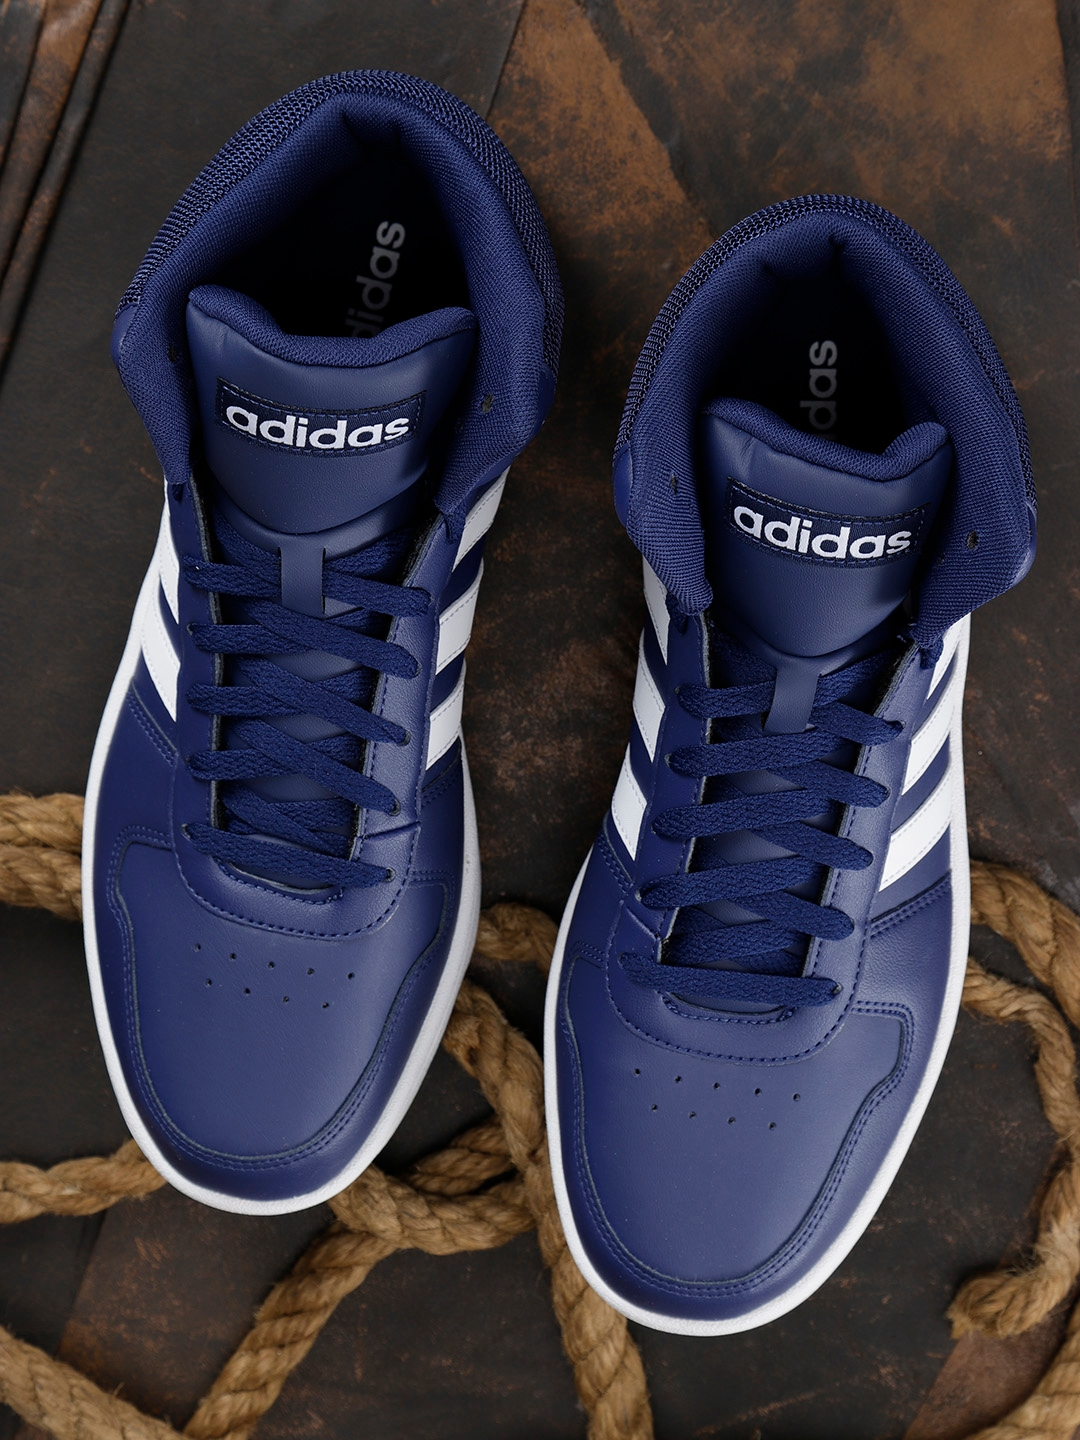 841c7cc976a Buy ADIDAS Men Navy Blue Hoops 2.0 Mid Basketball Shoes - Sports ...